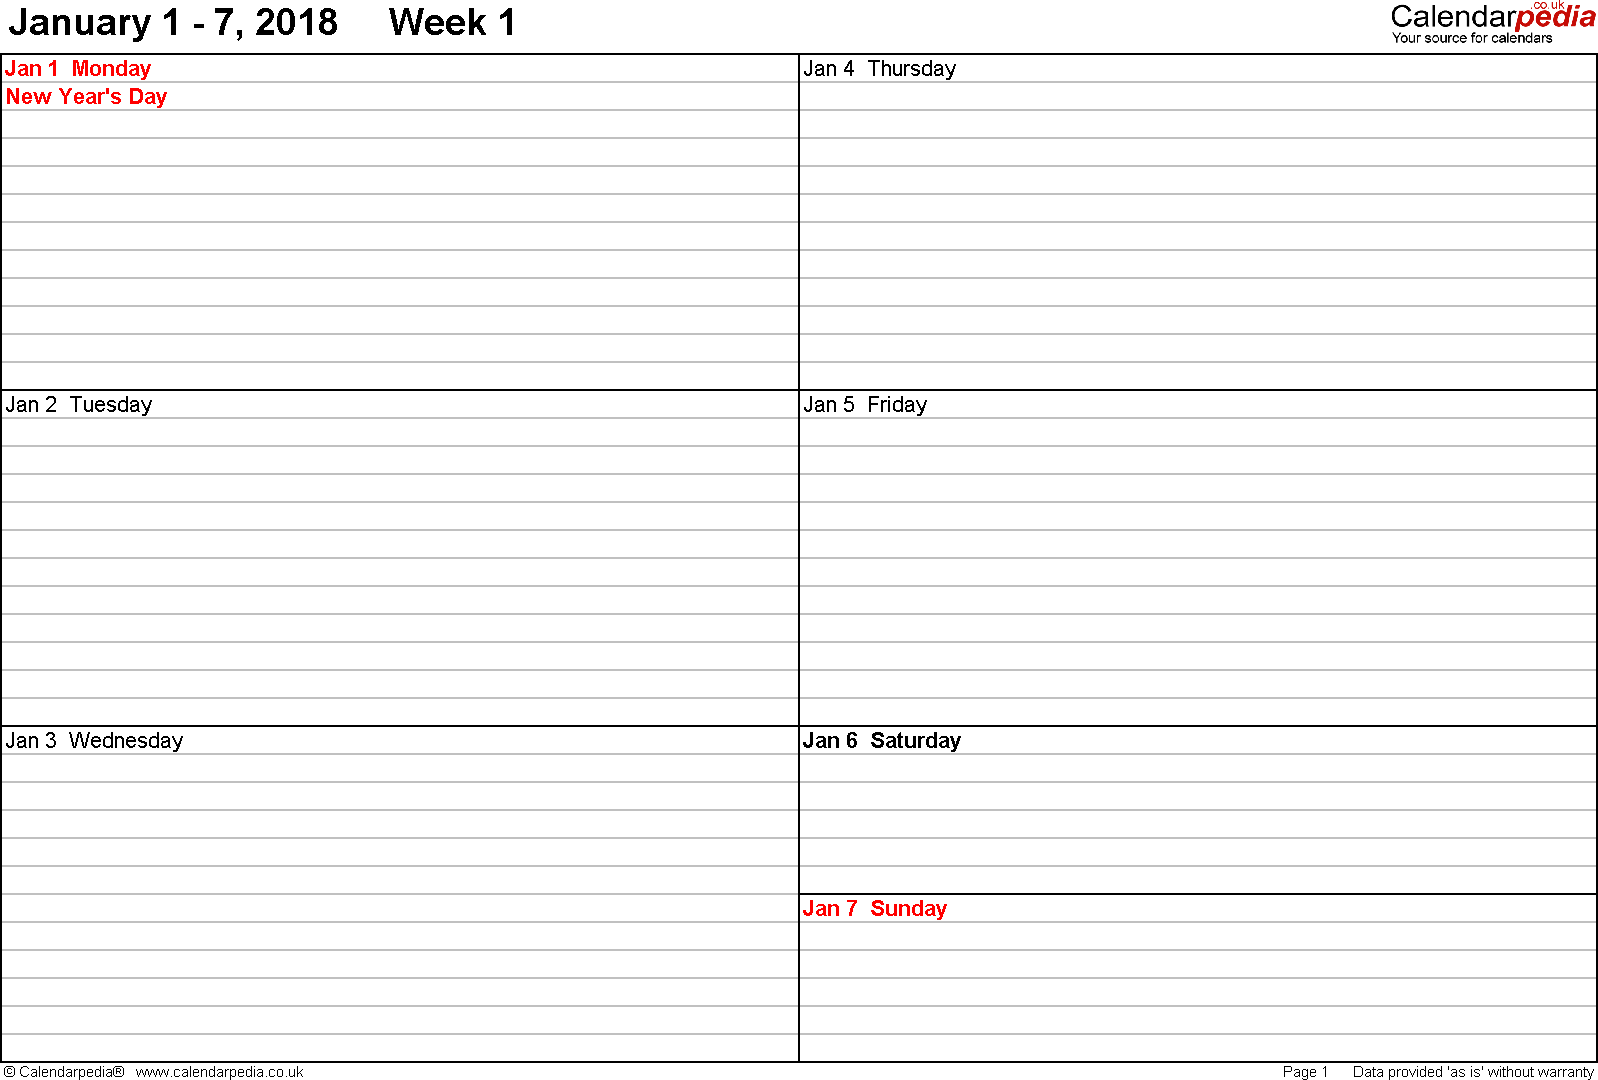 PDF template 5: Weekly calendar 2018, landscape orientation, 53 pages (1 calendar week on 1 page), week divided into 2 columns